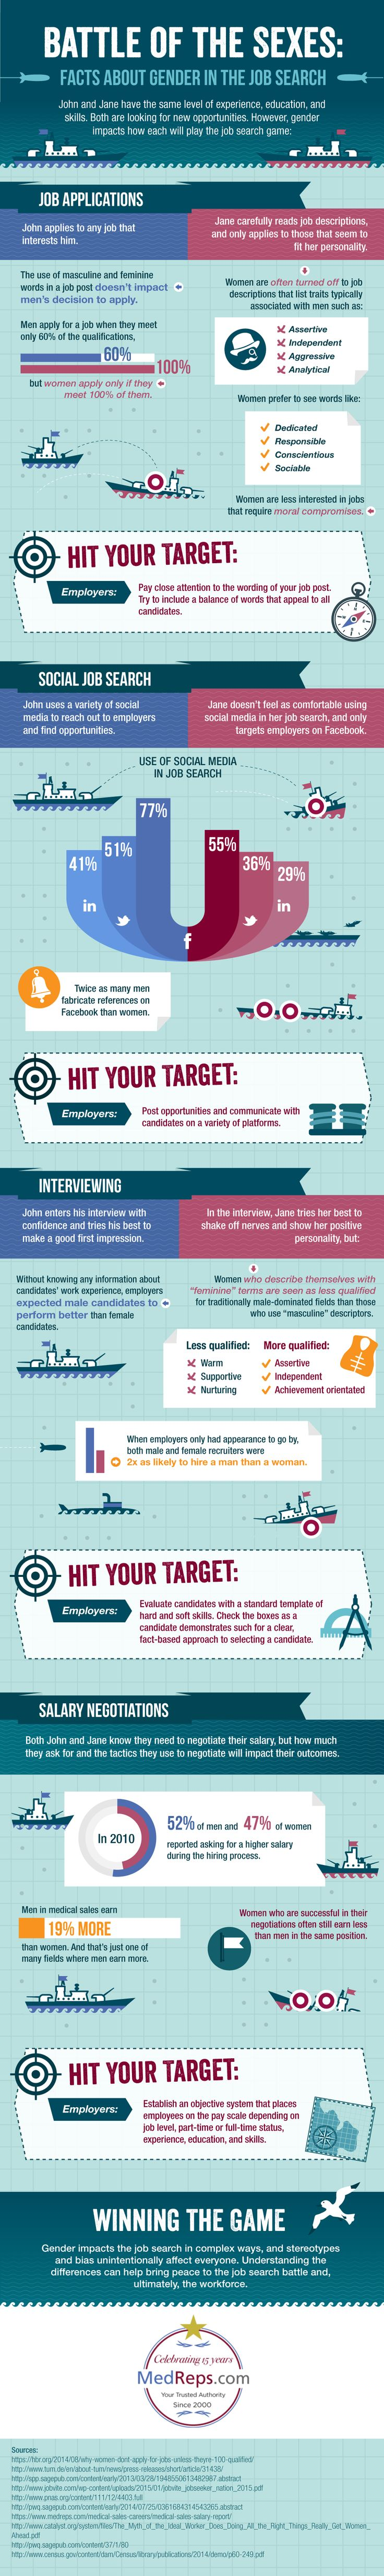 best images about job search infographics battle of the sexes facts about gender in the job search